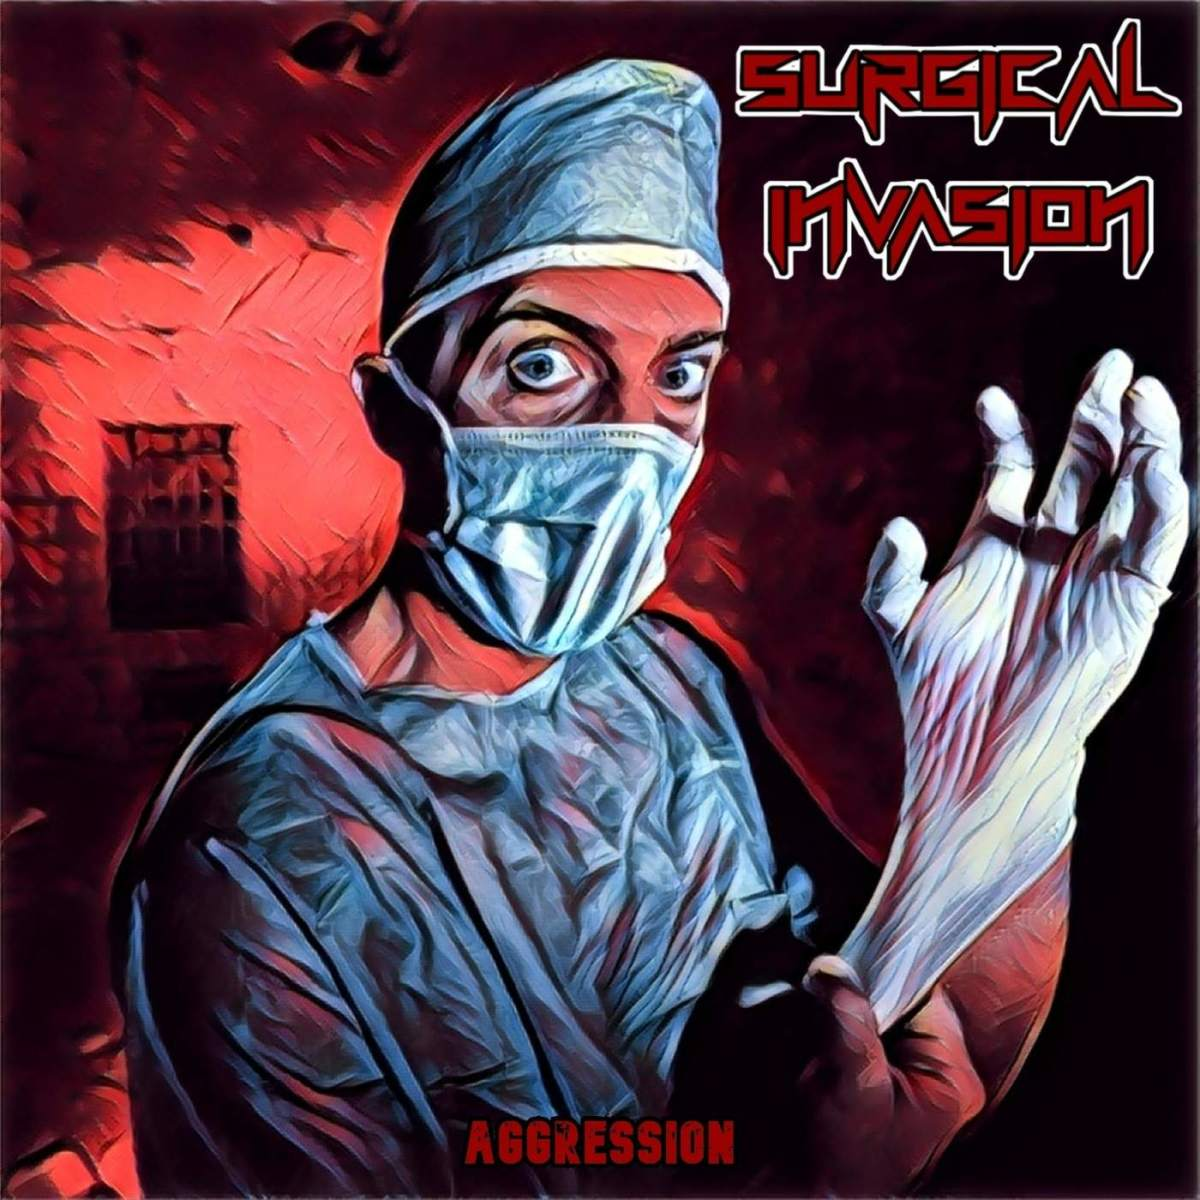 review-of-the-album-aggression-by-ukrainian-thrash-metal-band-surgical-invasion